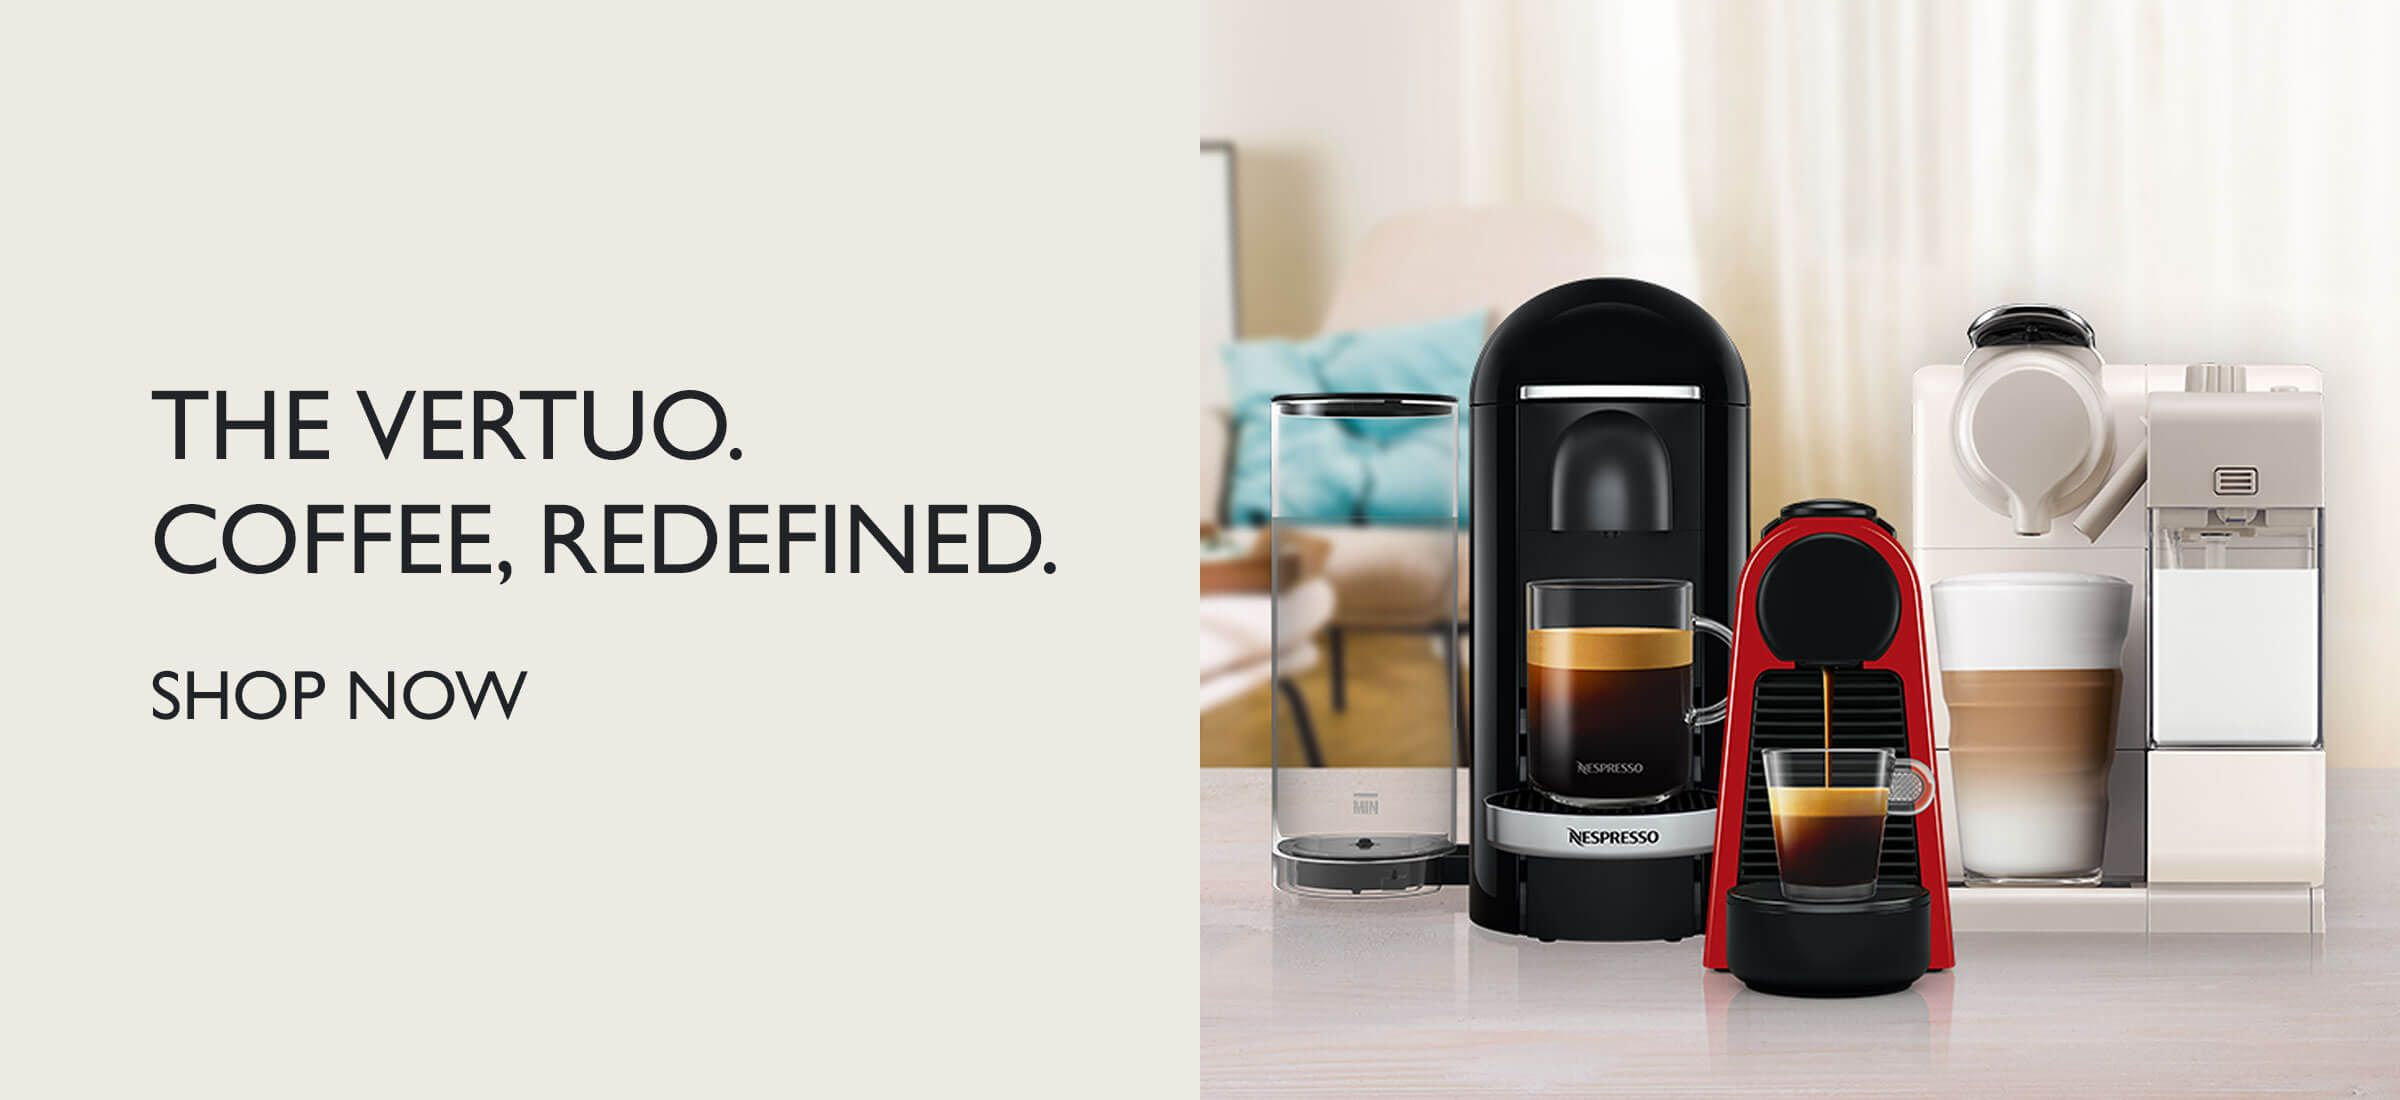 THE VERTUO. COFFEE, REDEFINED.